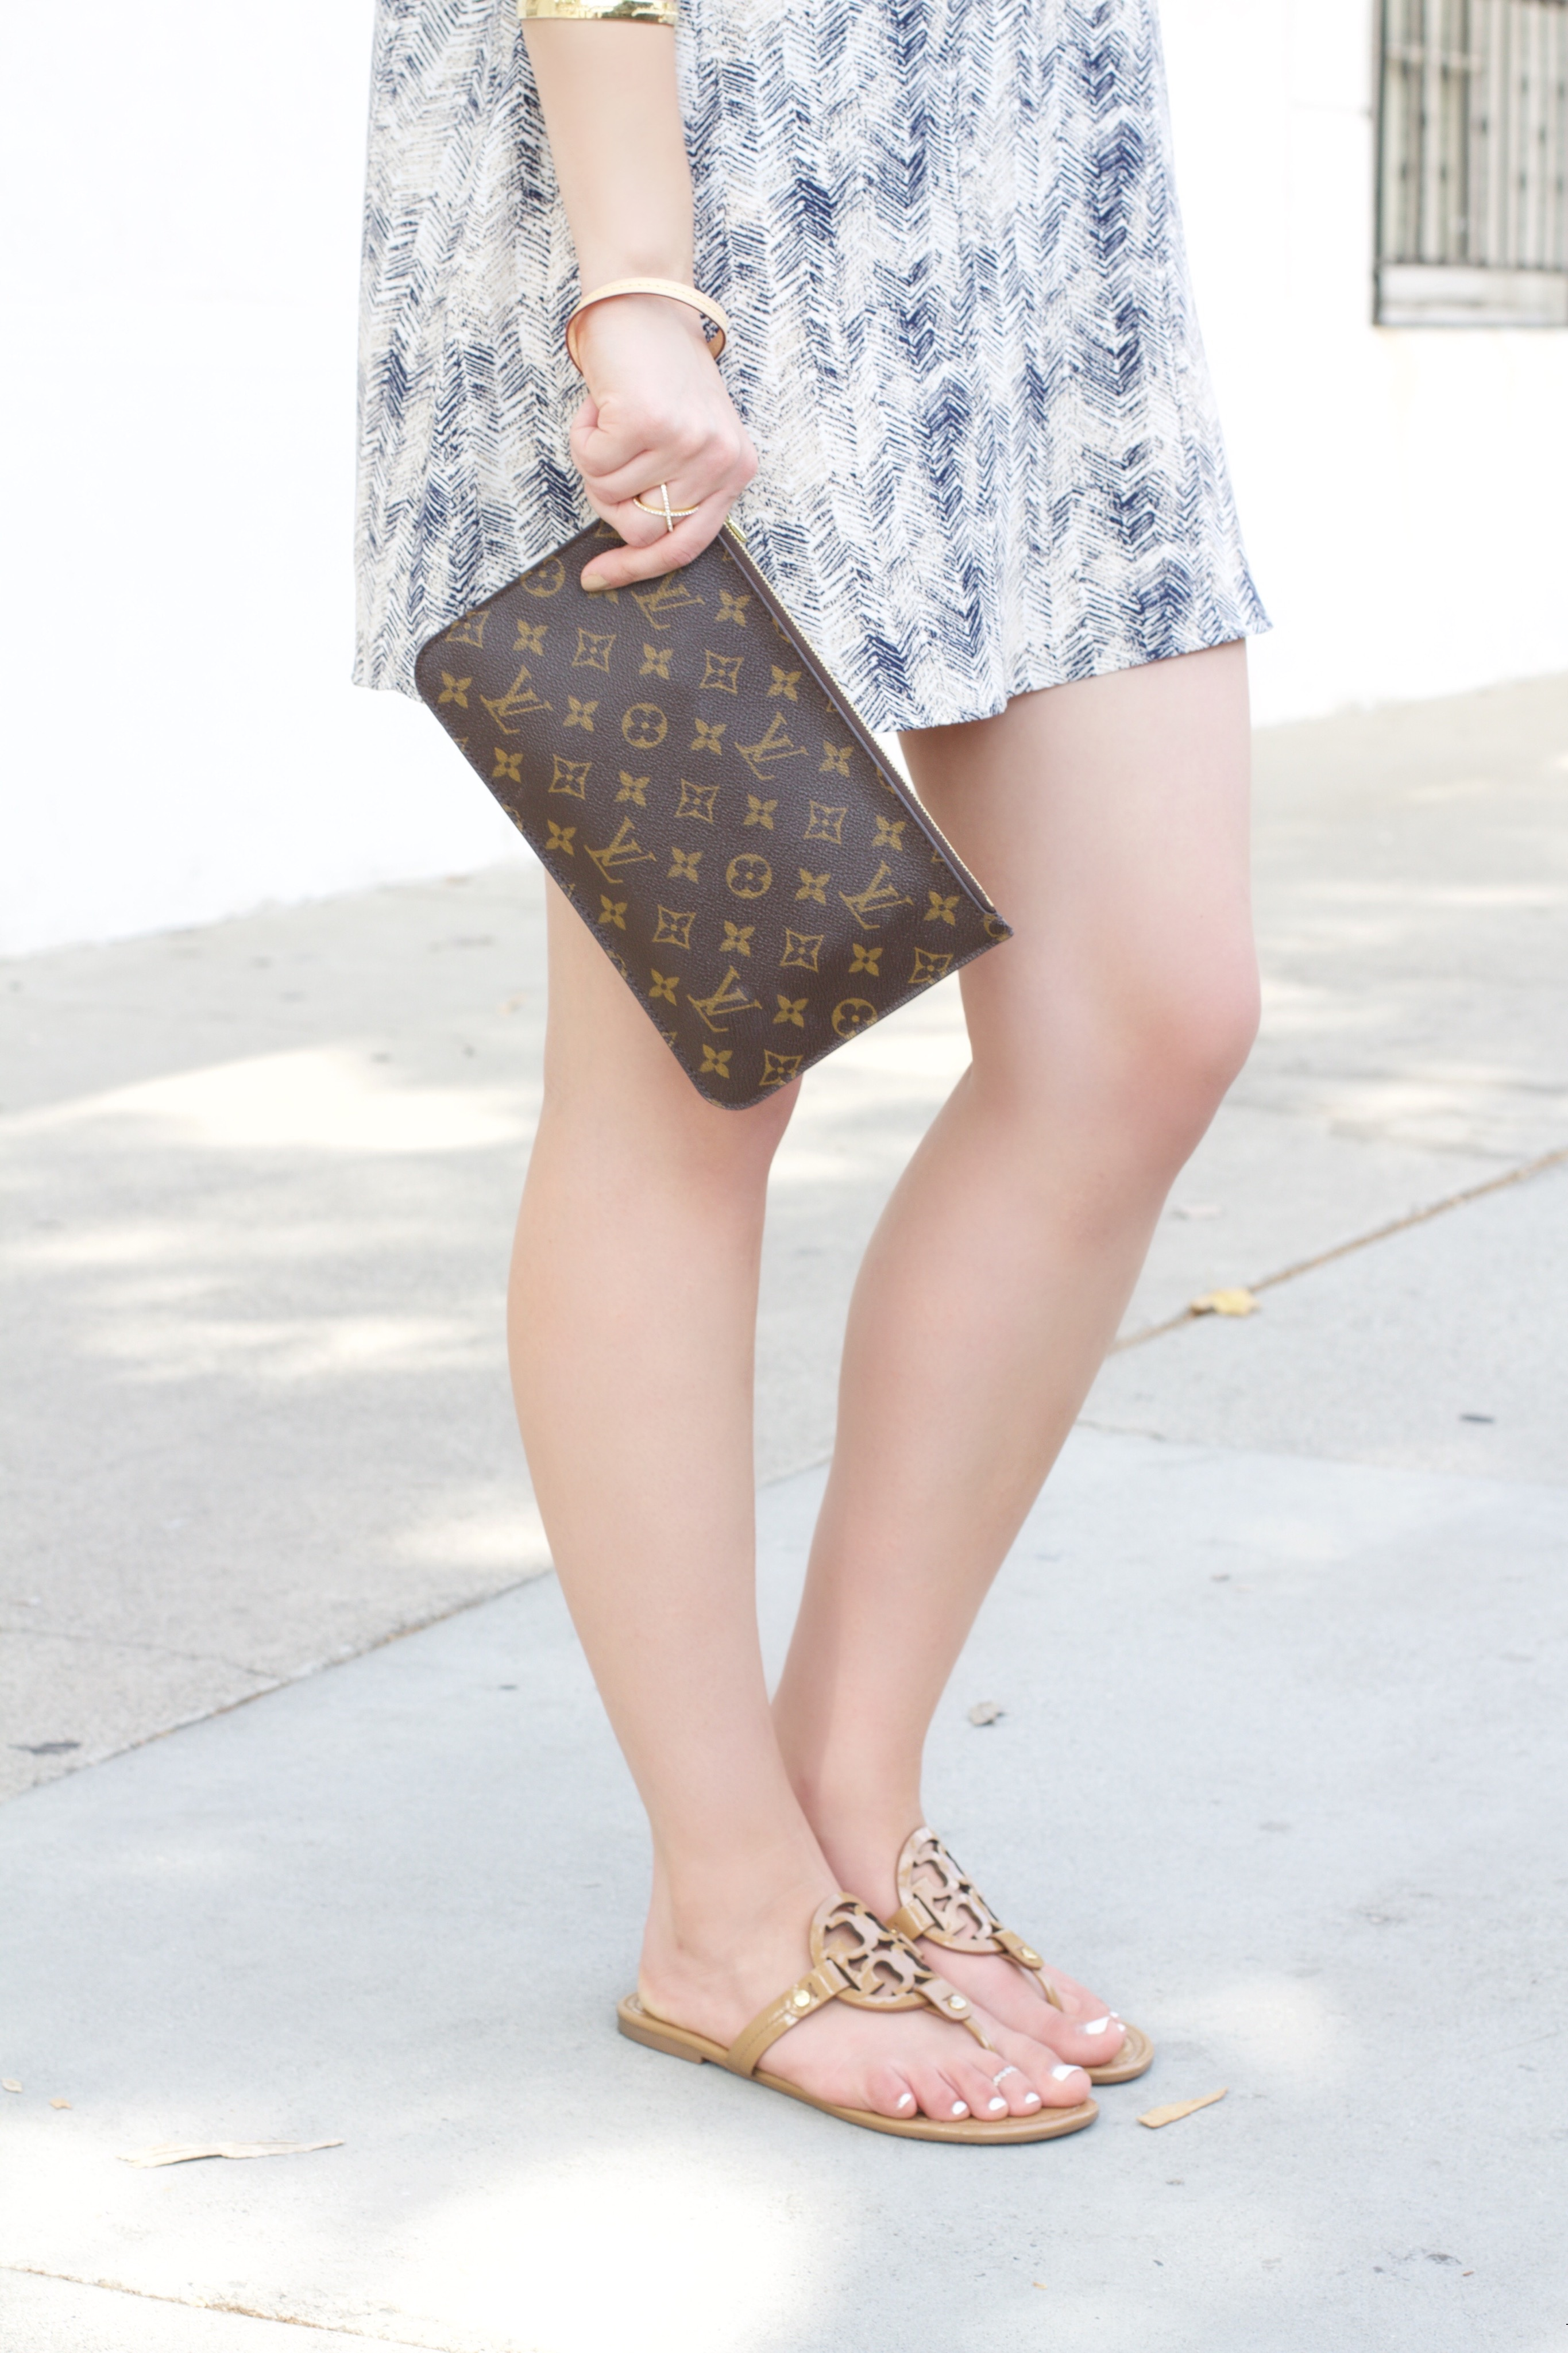 f34c96fc0 louis vuitton neverfull clutch   Tory Burch Nude Miller sandals – My Styled  Life